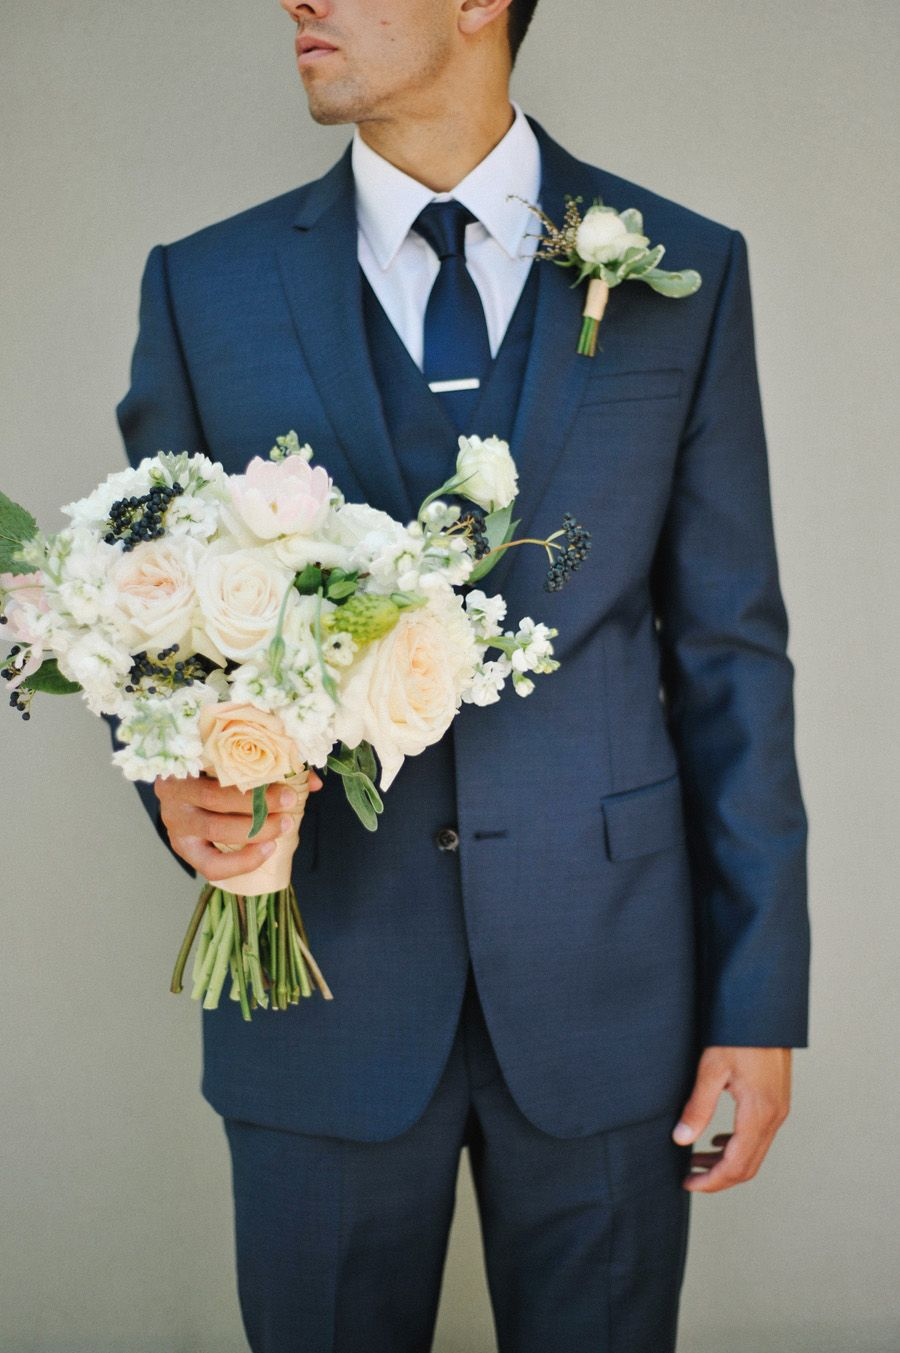 Groom in Navy Suit | Boutonnieres, Navy and Wedding